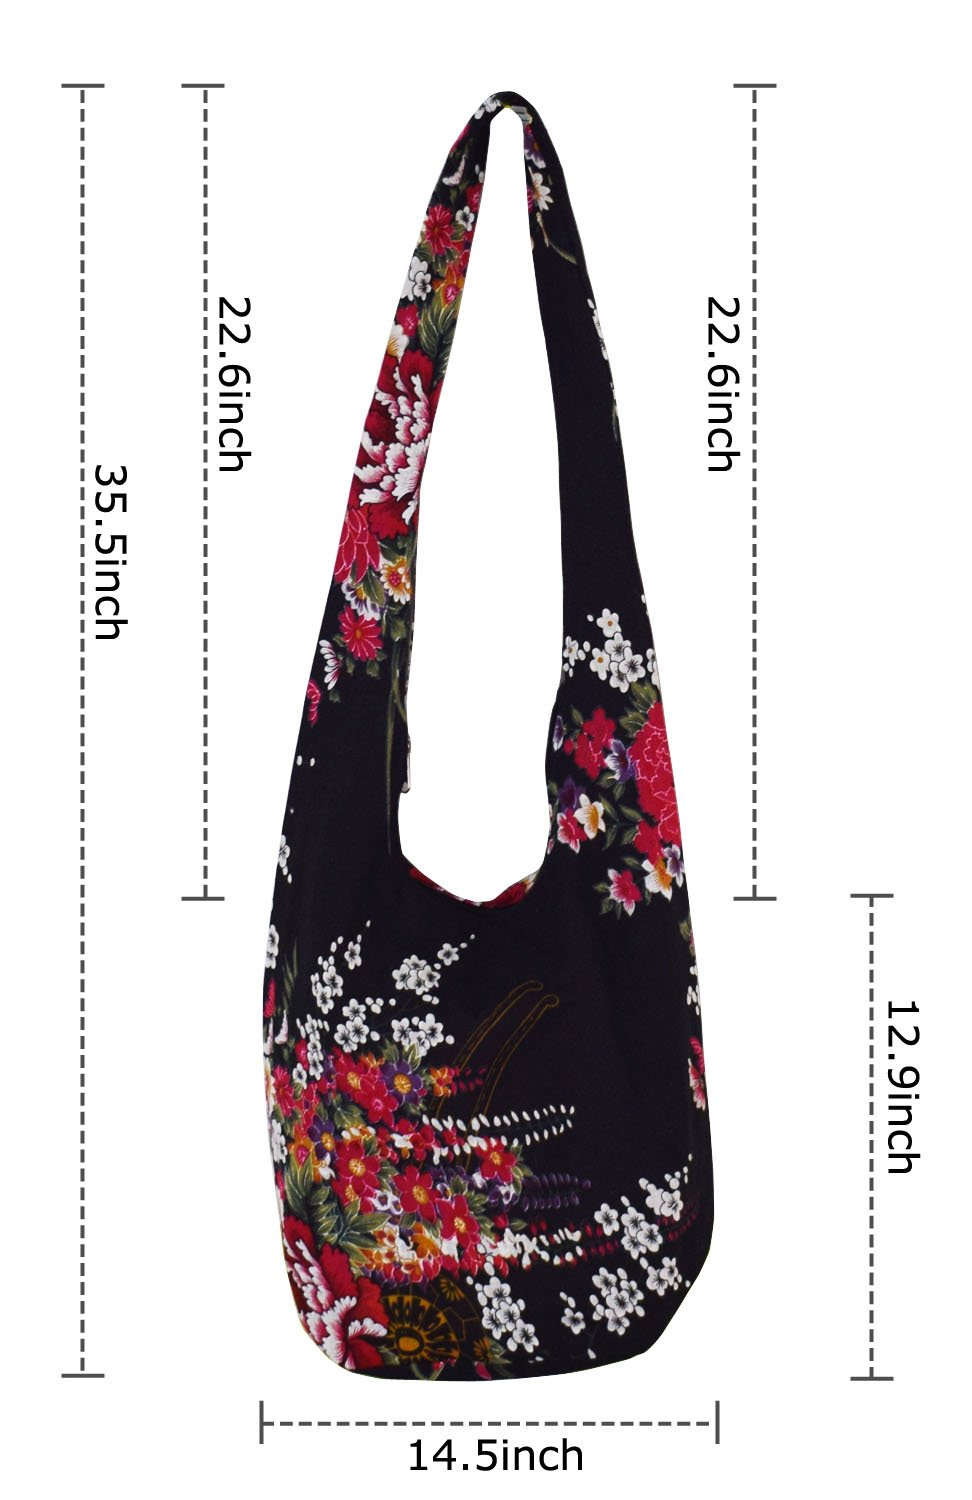 Witery Women's Sling Crossbody Bags Large Shoulder Shopping Hobo Bag Handbag Top Zip Bags Handmade Messenger Bag Wallet by Witery (Image #5)